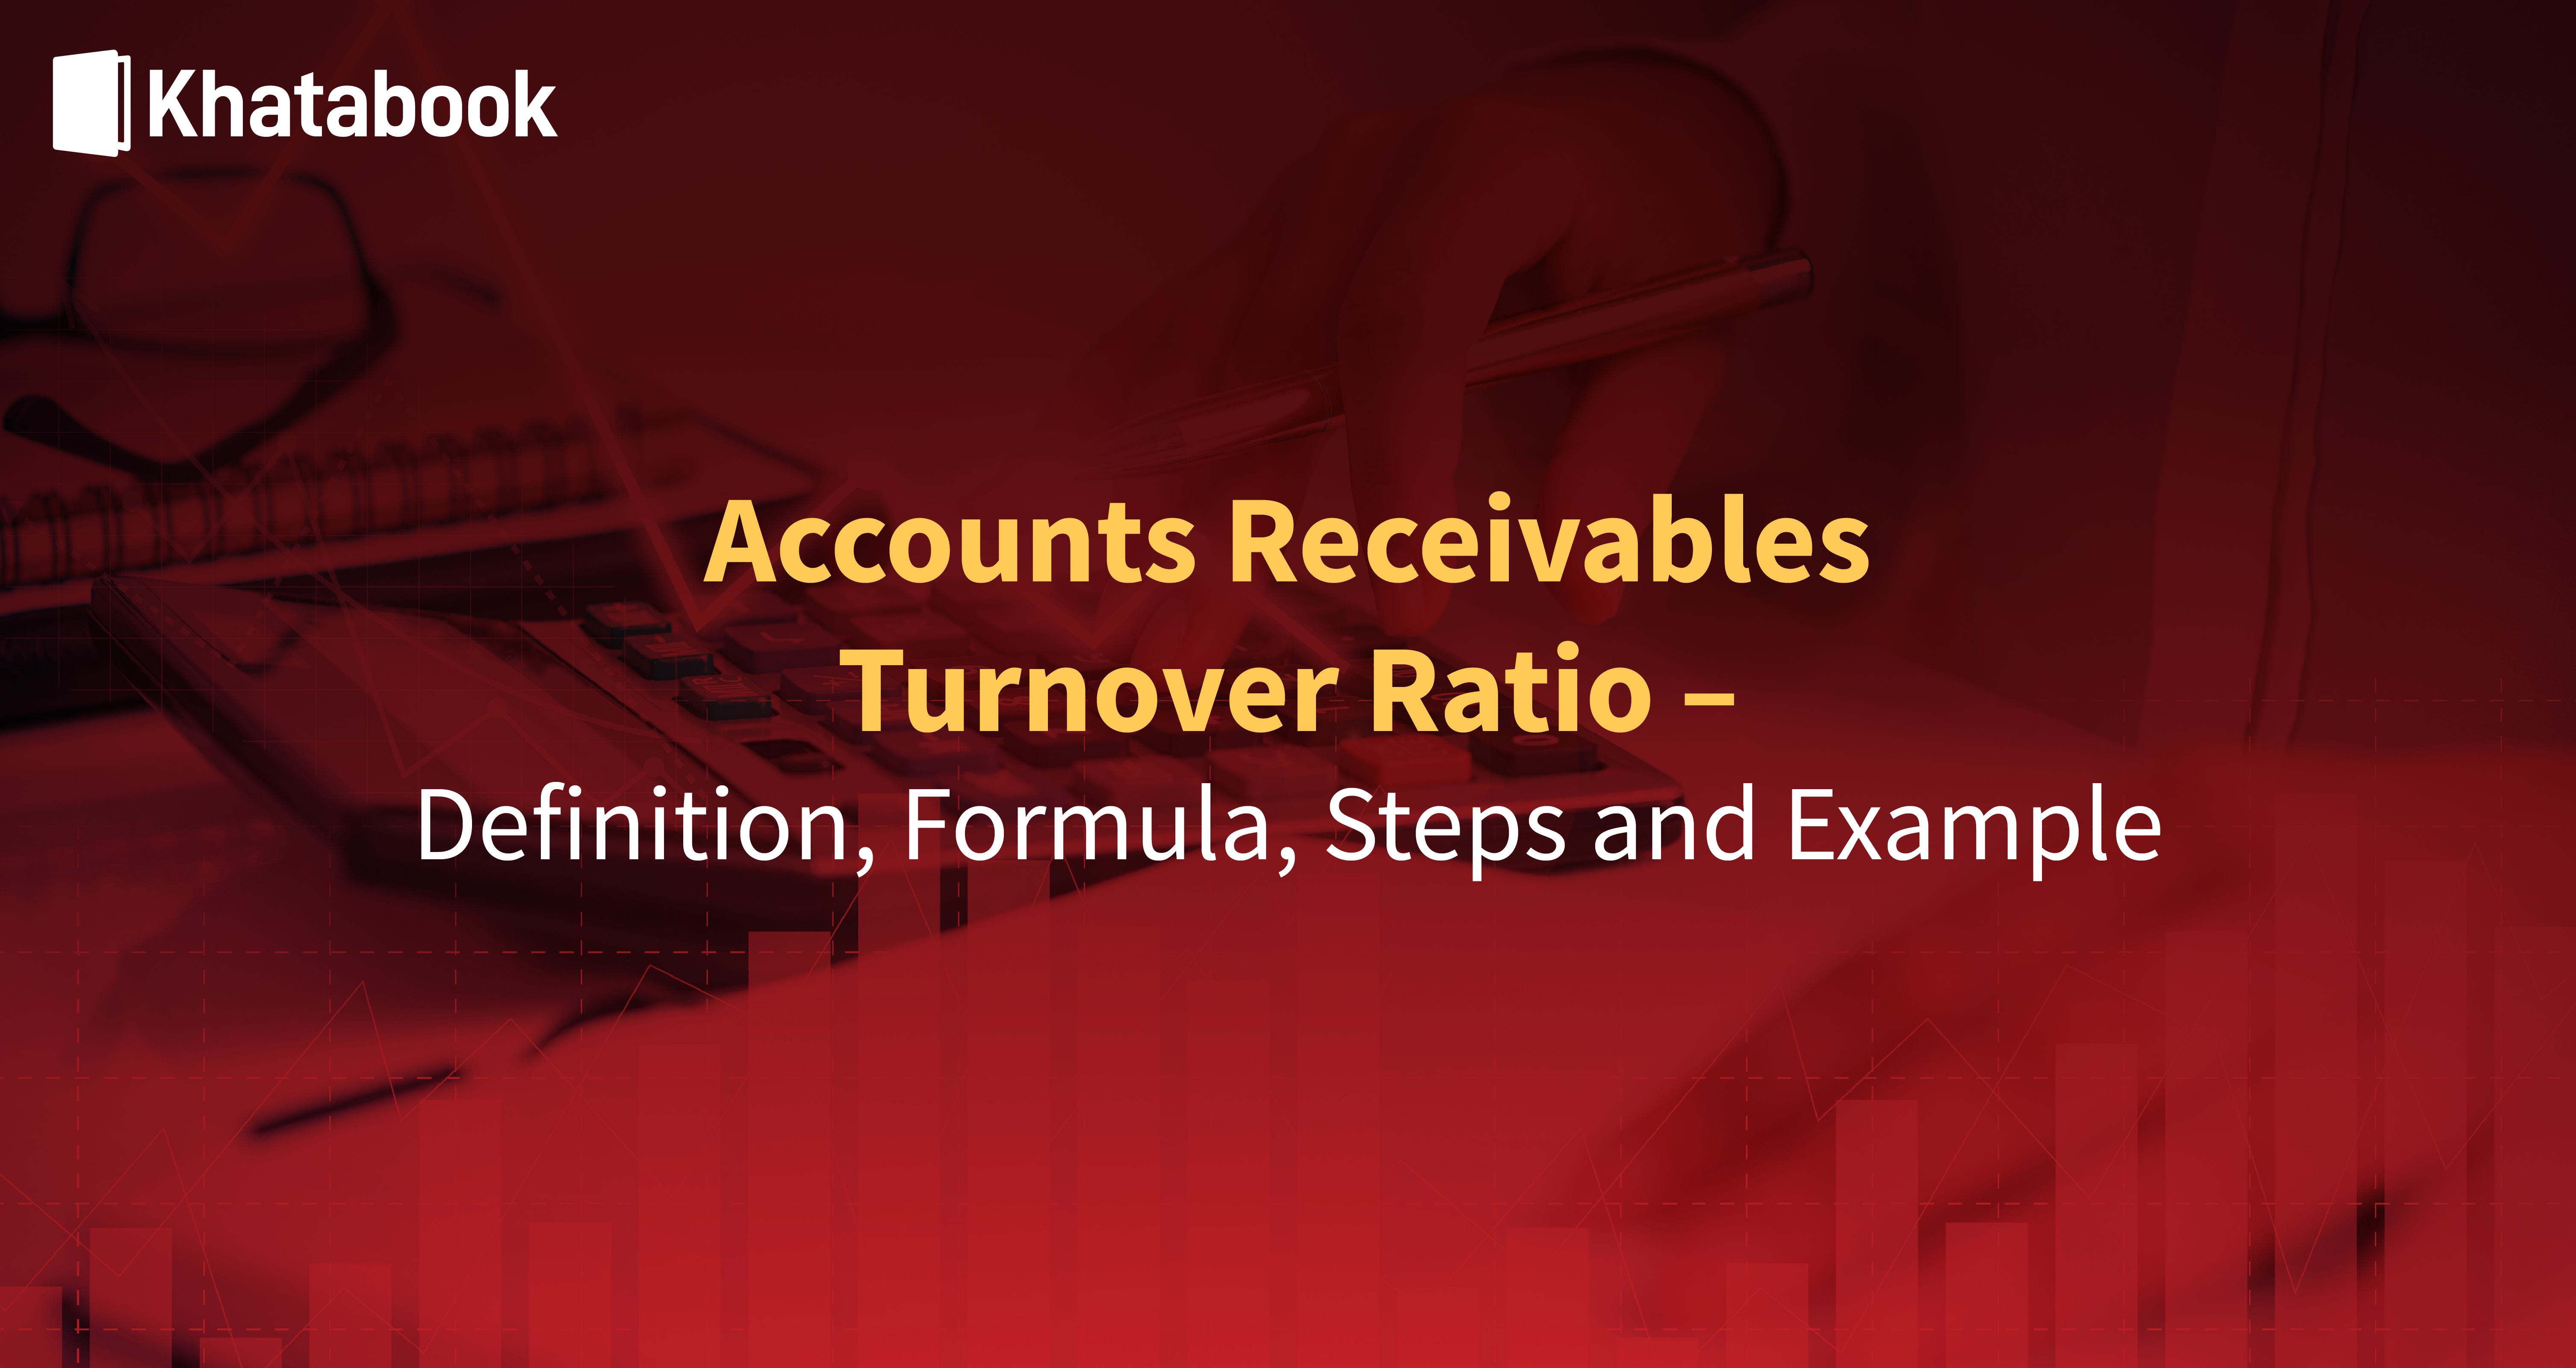 Step-By-Step Guide To Calculate Accounts Receivable Turnover Ratio